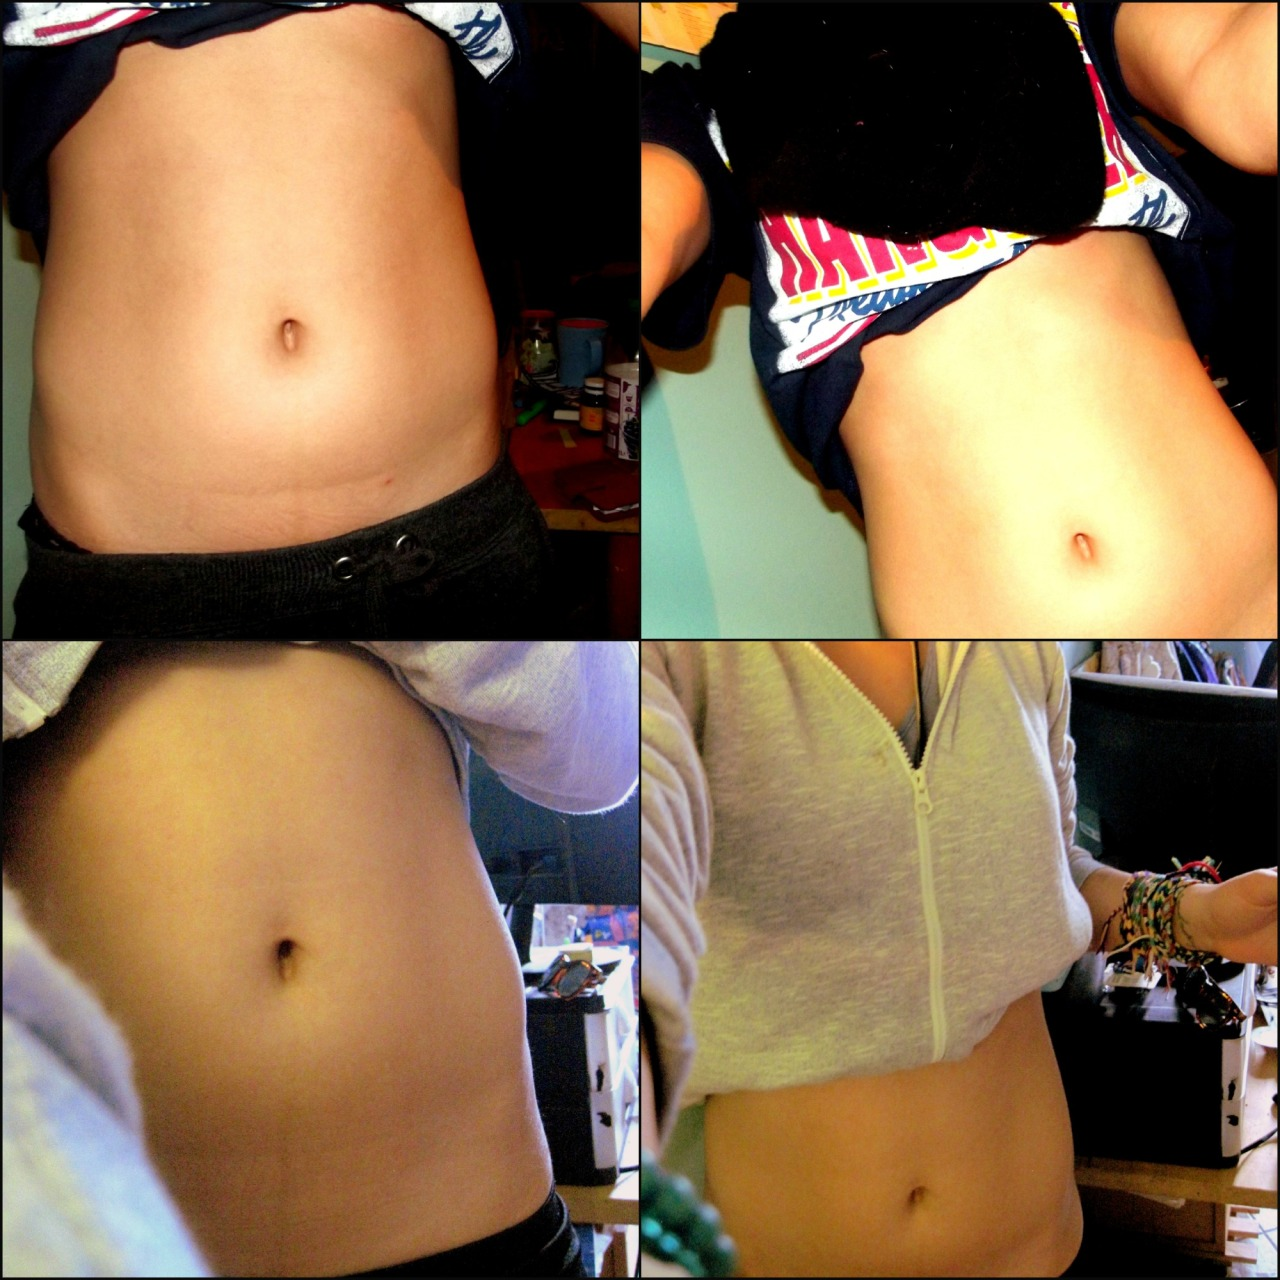 TOP PICS - 28 MARCH , BOTTOM - 3 MAY  So I said I'd be updating my keep healthy get ab challenge. Sorry for the late post it shall be explained soon :)  PHOTO TAKEN 3 MAY 2013 . IMPROVED ASPECTS  - Calf muscles that are more shaped  - You can tell the slight change through the 'cross line' I have on my belly , it has less of a bump. -Hip bones look sharper  - structure of the belly is much linear , less curvy I guess  -Firmer butt ( woop woop )  - Less desire for junky food  FAILEDDDDD ASPECTS  - 22nd april was my birthday so there was A LOT od drinking and smoking and sweeties  involved this month  - Had no softball during easter boo wooo  - Did my ab work outs first week of easter then gave up  Goals  - Keep doing softball till June  - try balance a healthy life and all the end of year assignments -.-  - stop smokinggggg ffs -.-  Next update  June 1 st :D